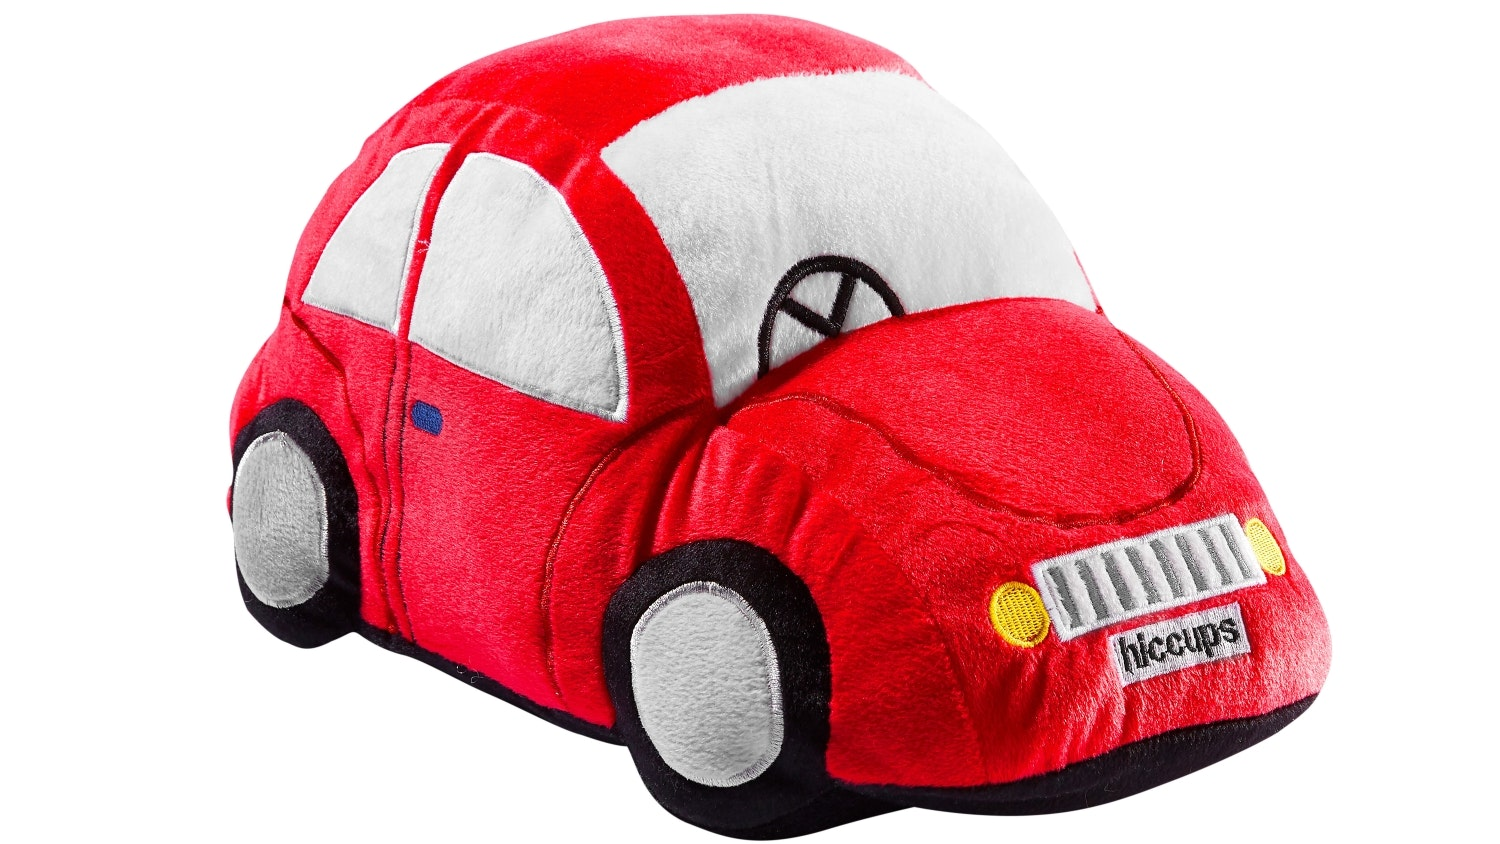 Hiccups Town Car Novelty Cushion - Red